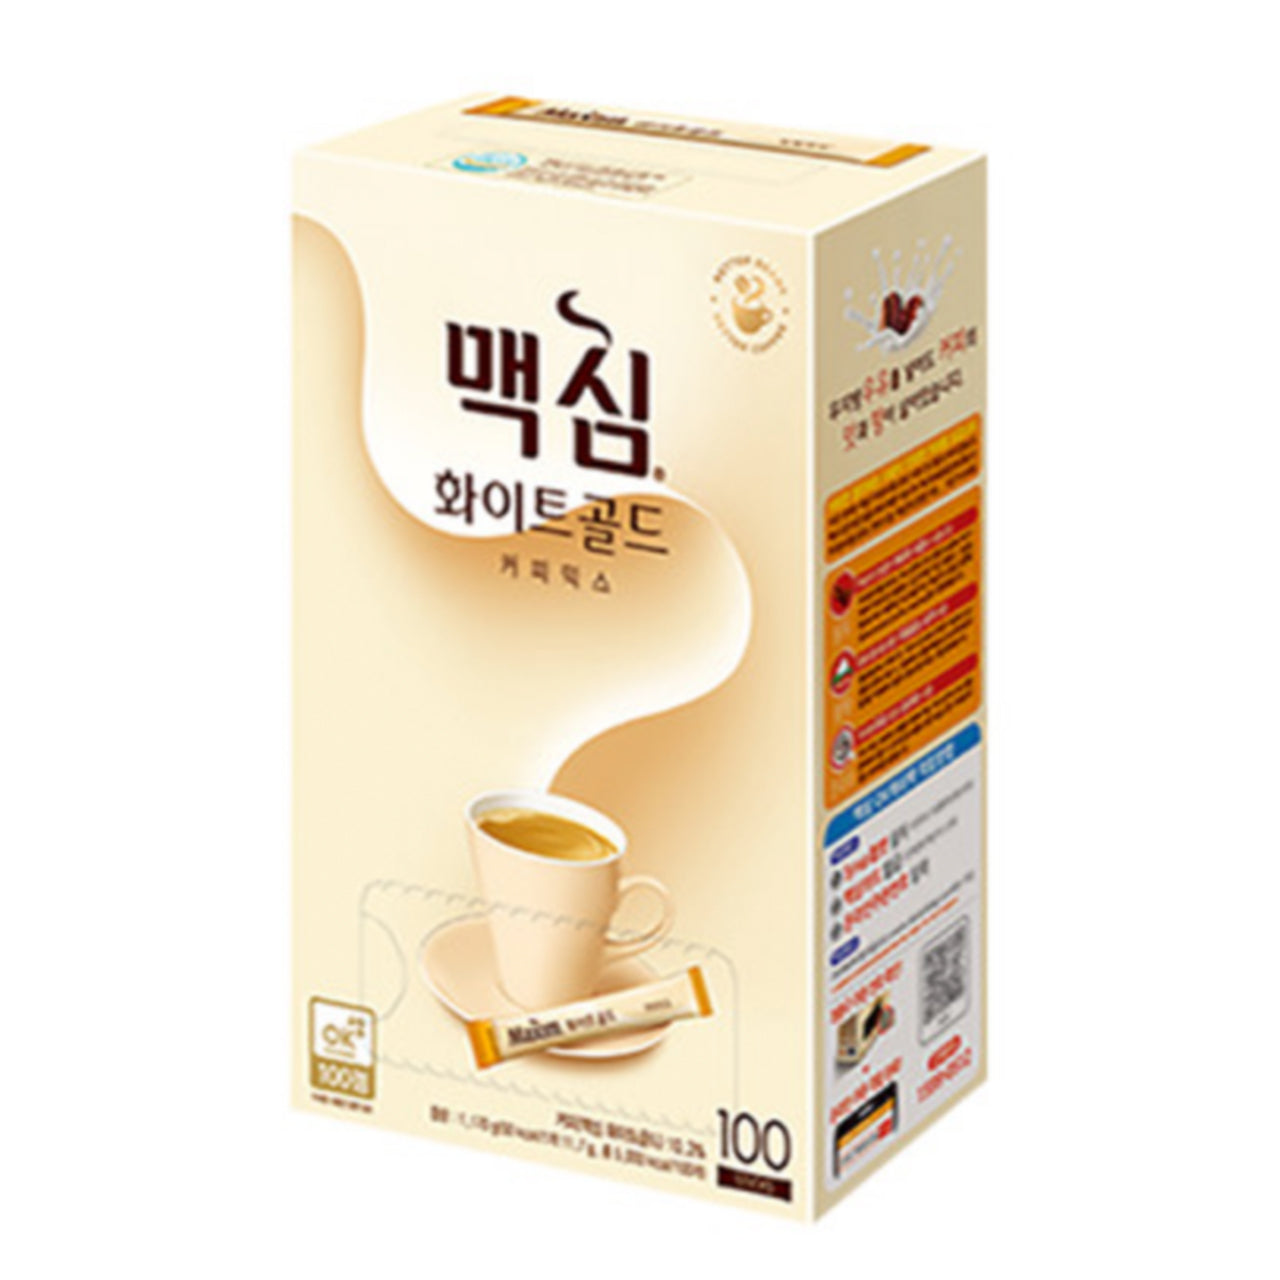 맥심 커피믹스 화이트골드 (Maxim Coffee Mix White Gold) - 12g x 100 sticks/box